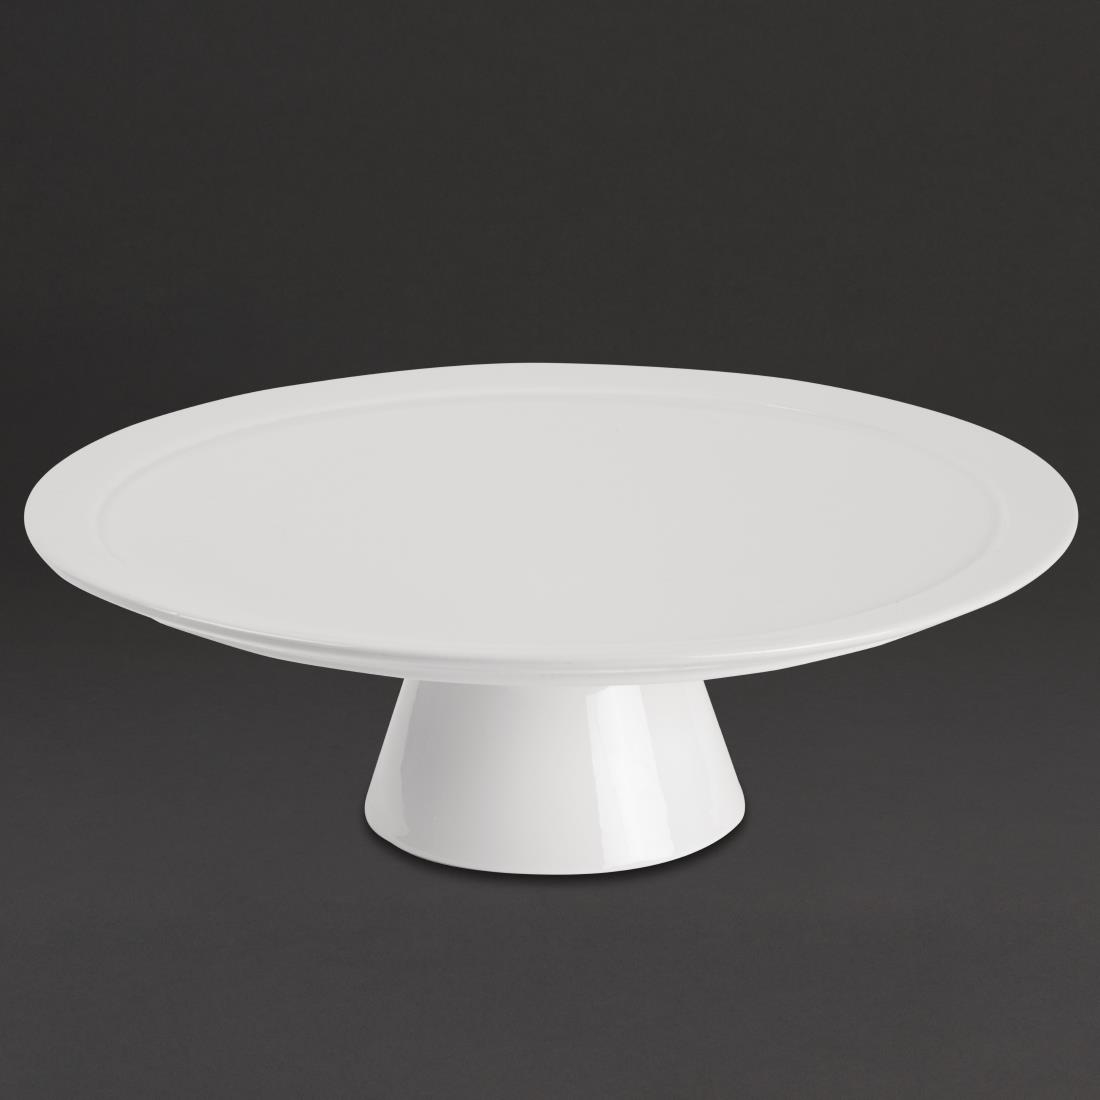 Image of Porcelain Cake Stand 305mm